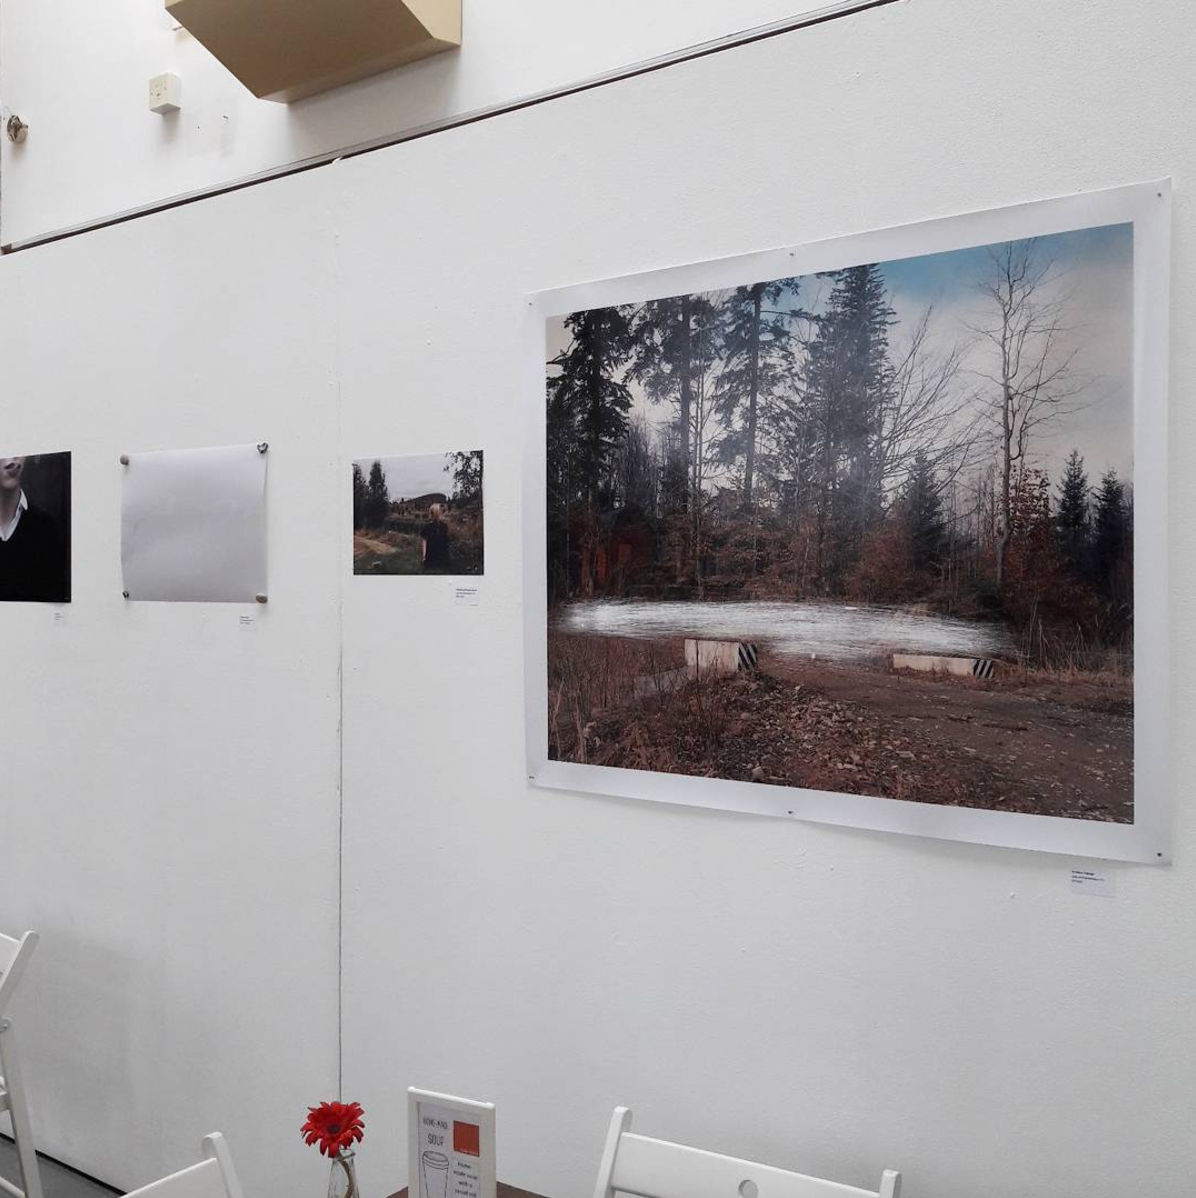 Installation image of some of the work at the Arts Café  (From left to right: Andrea Allan, Declan Connolly, Charlotte and Georgia Bennett, Andreea Teleaga)